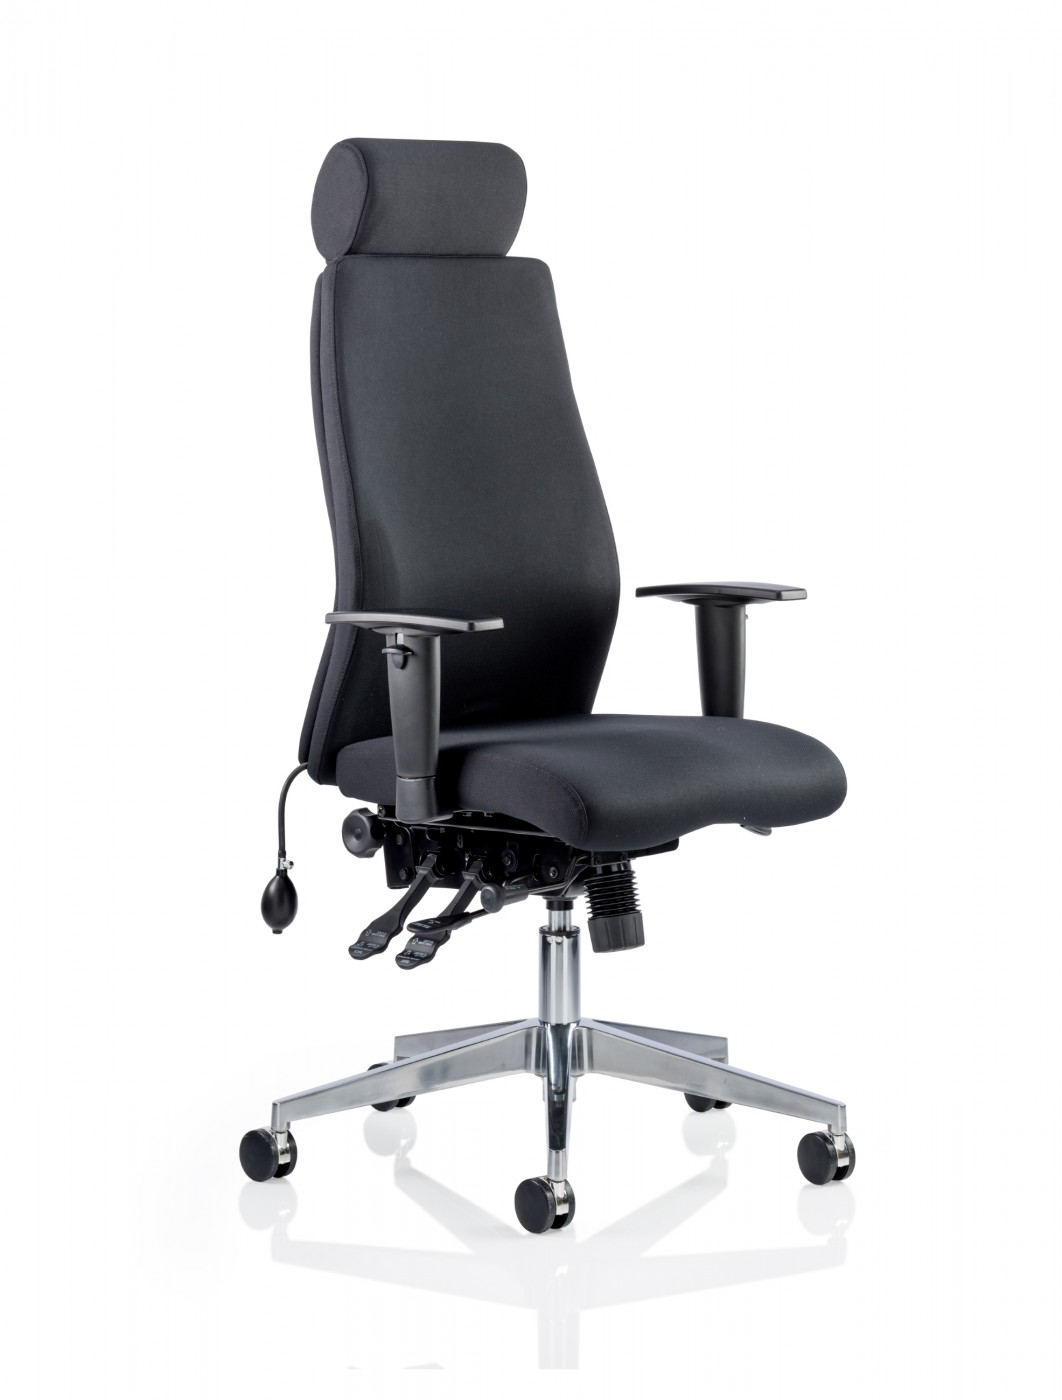 24 Hour Office Chairs Dynamic Onyx Fabric Office Chair With Headrest Op000096